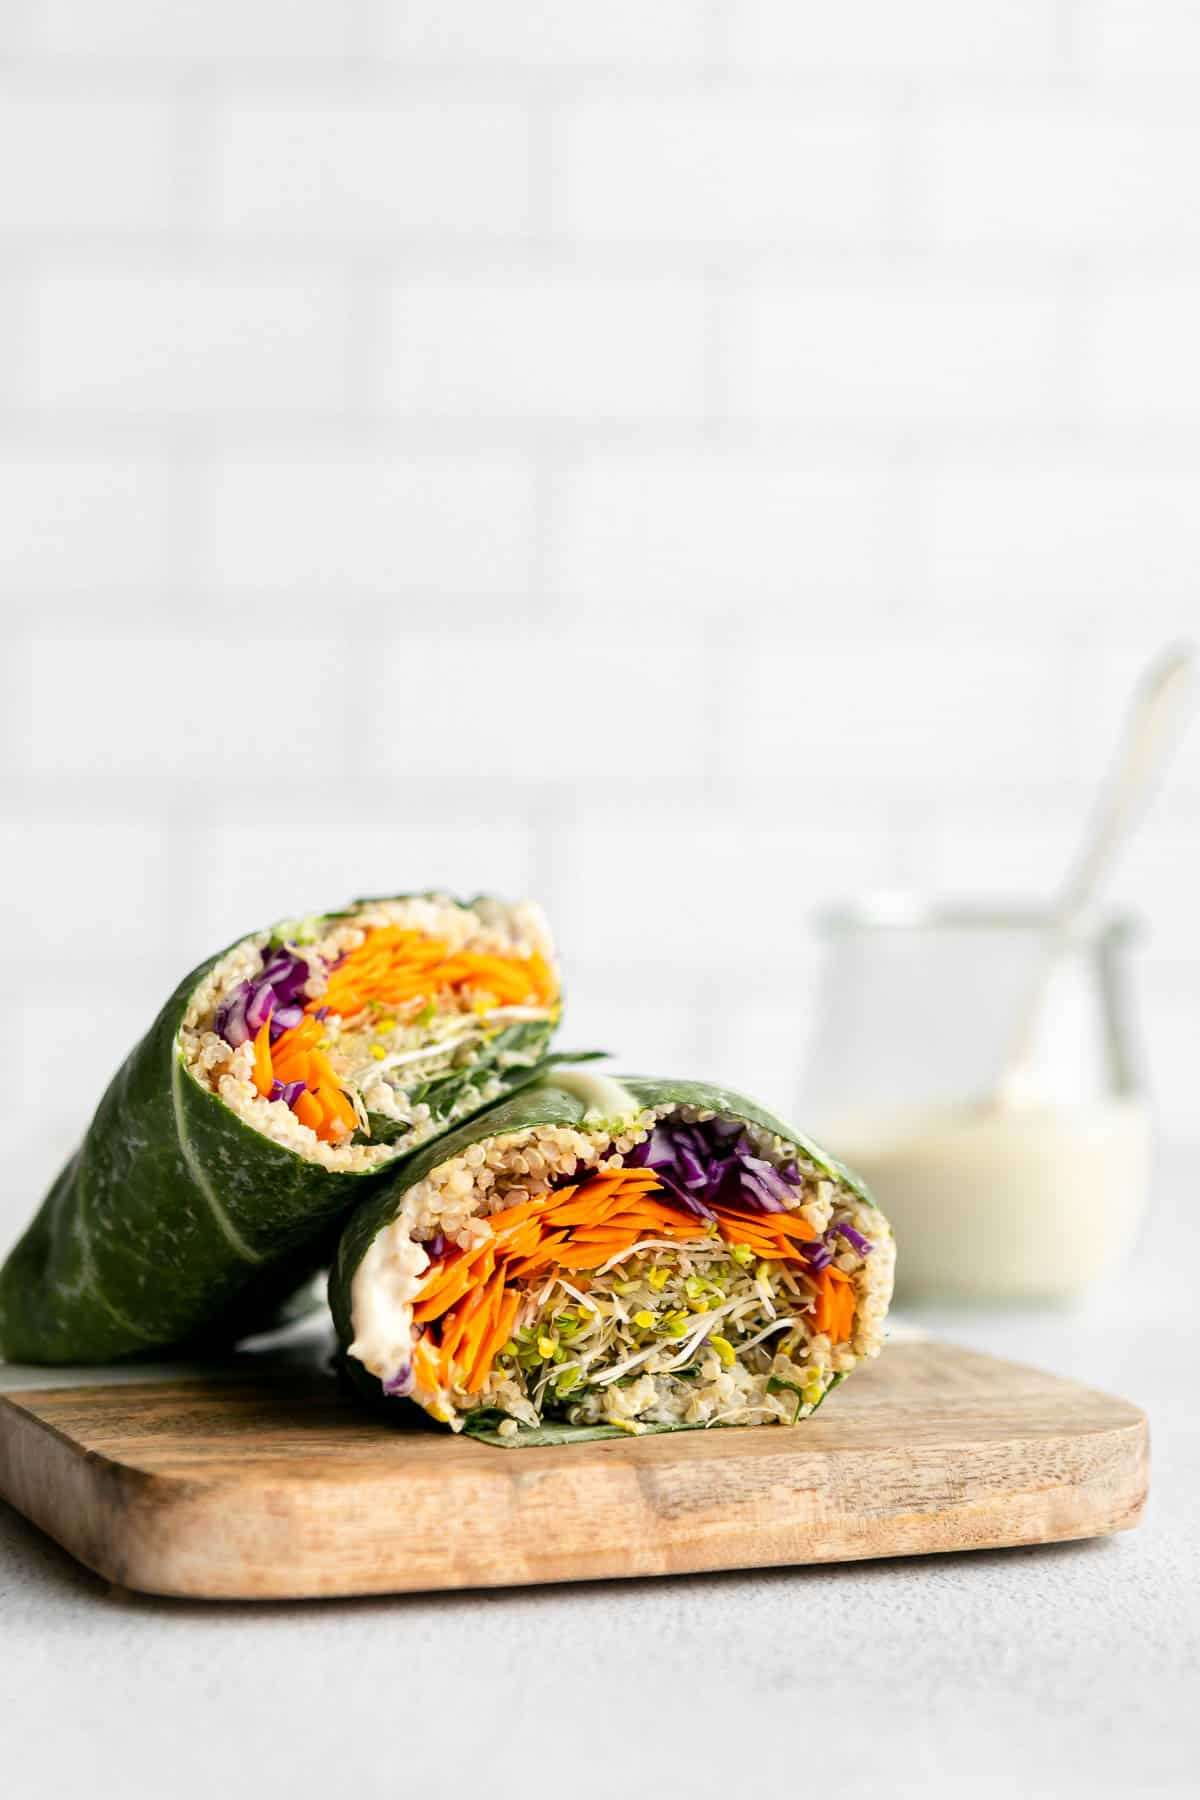 two collard wraps cut in half with quinoa and veggies